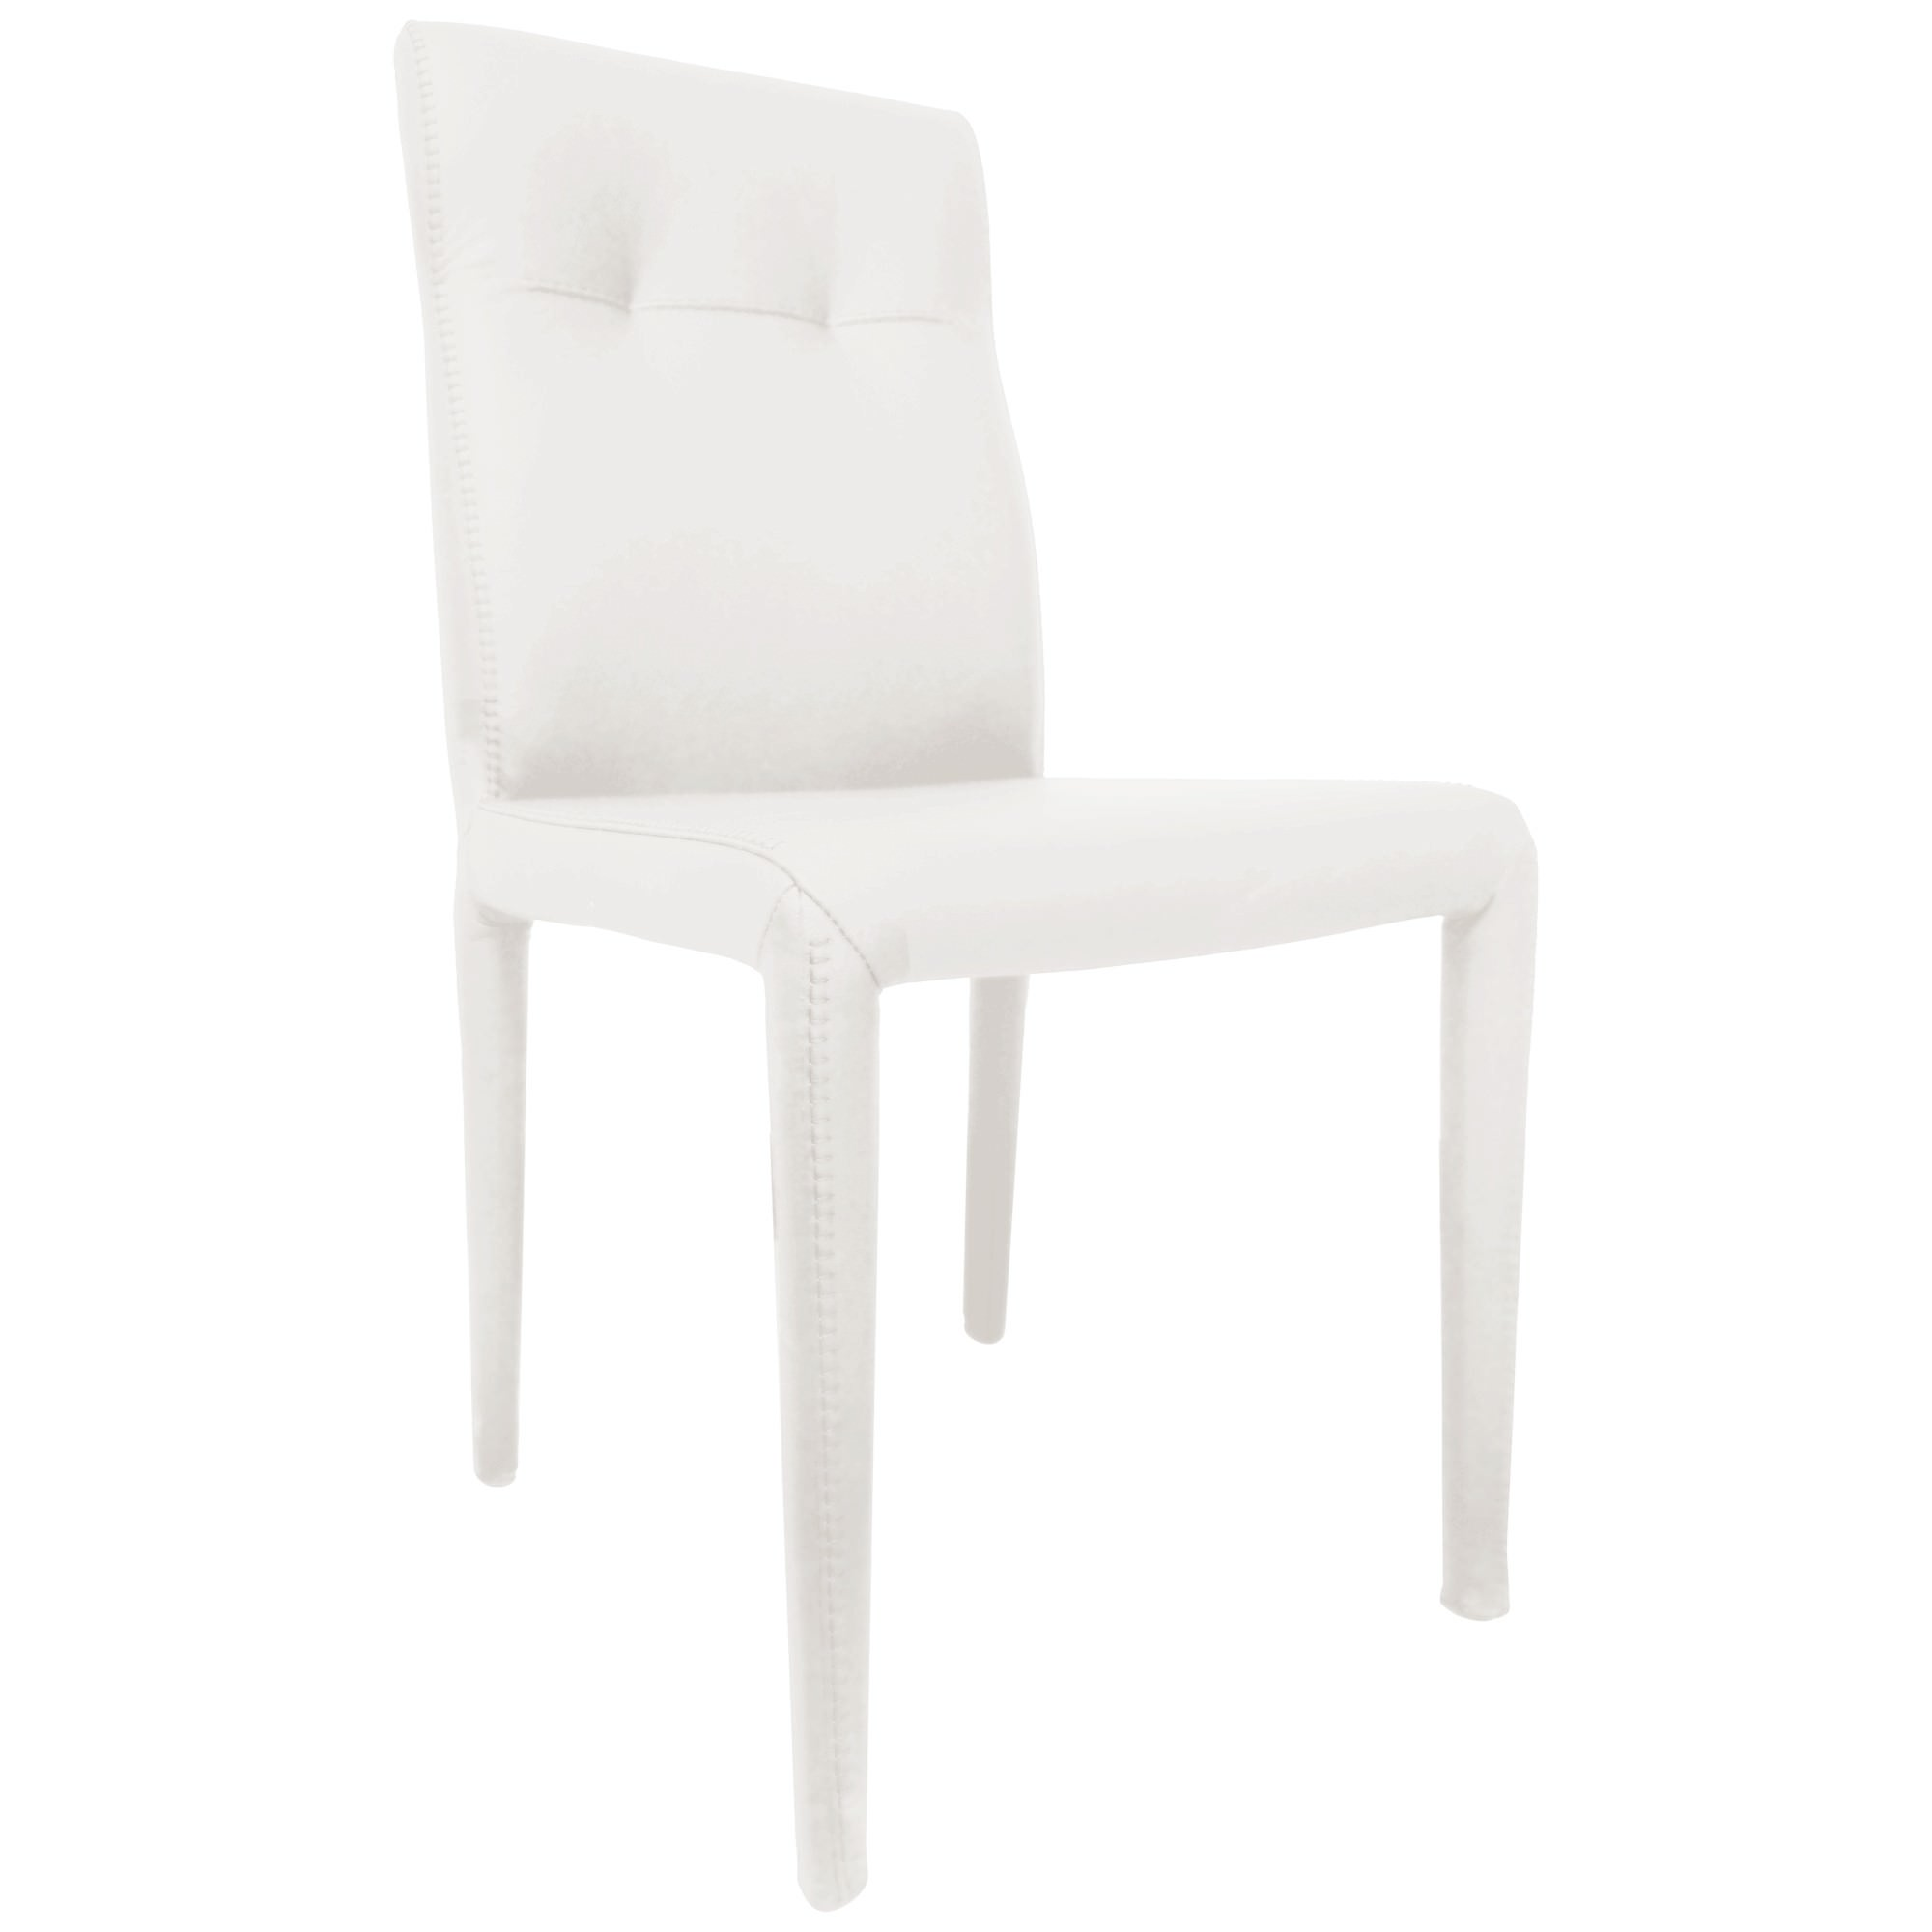 Winter Leather Dining Chair, White